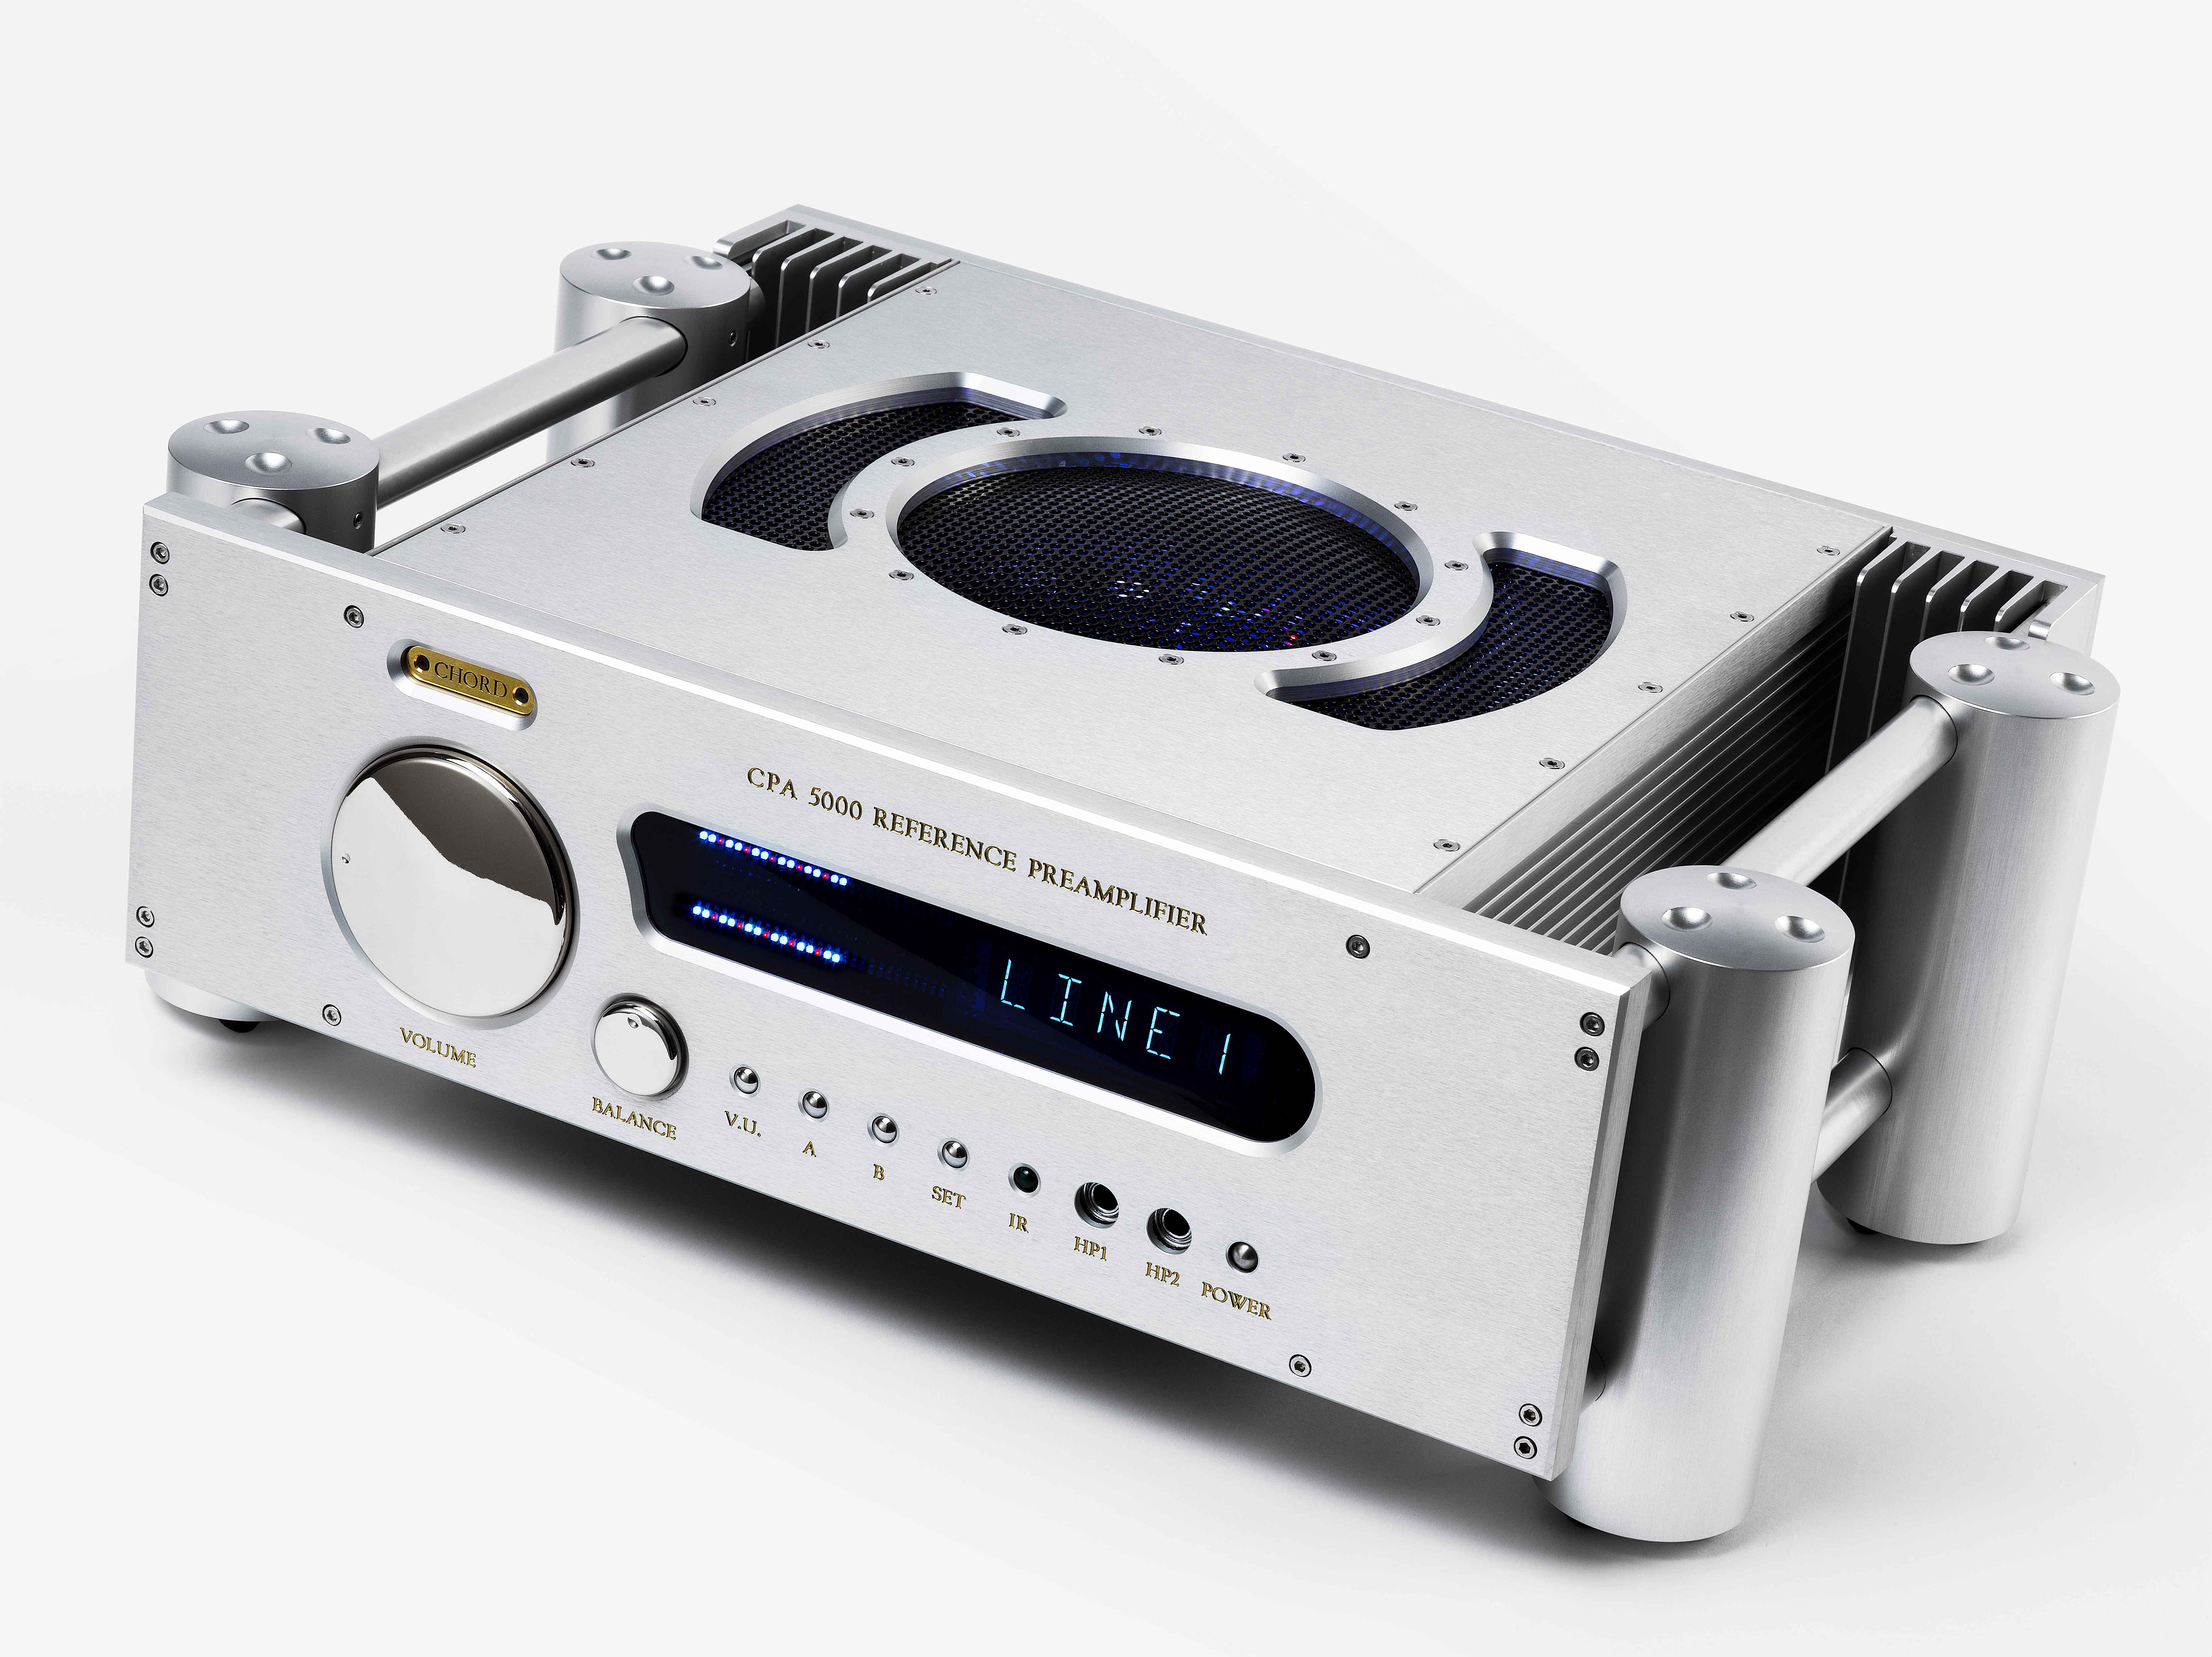 CPA 5000 Reference preamplifier BIG